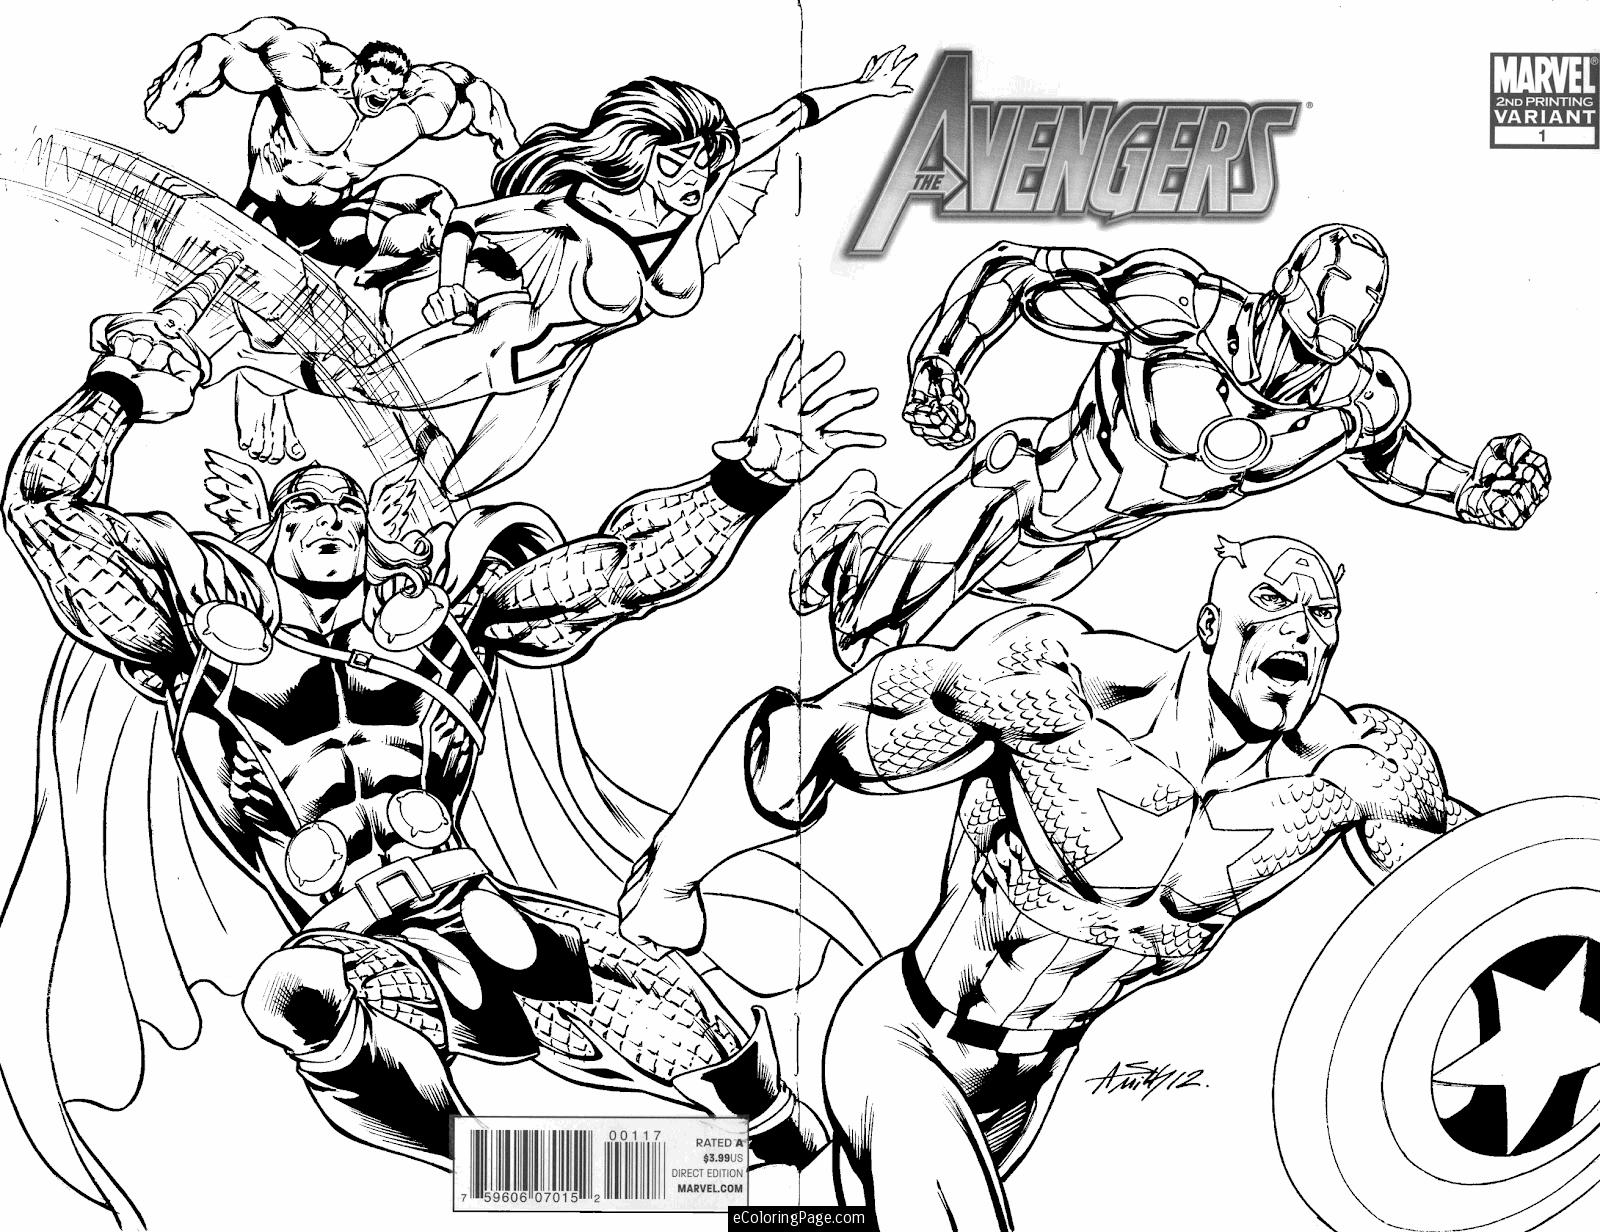 Free coloring pages for avengers - Printable Avengers Coloring Sheets Coloring